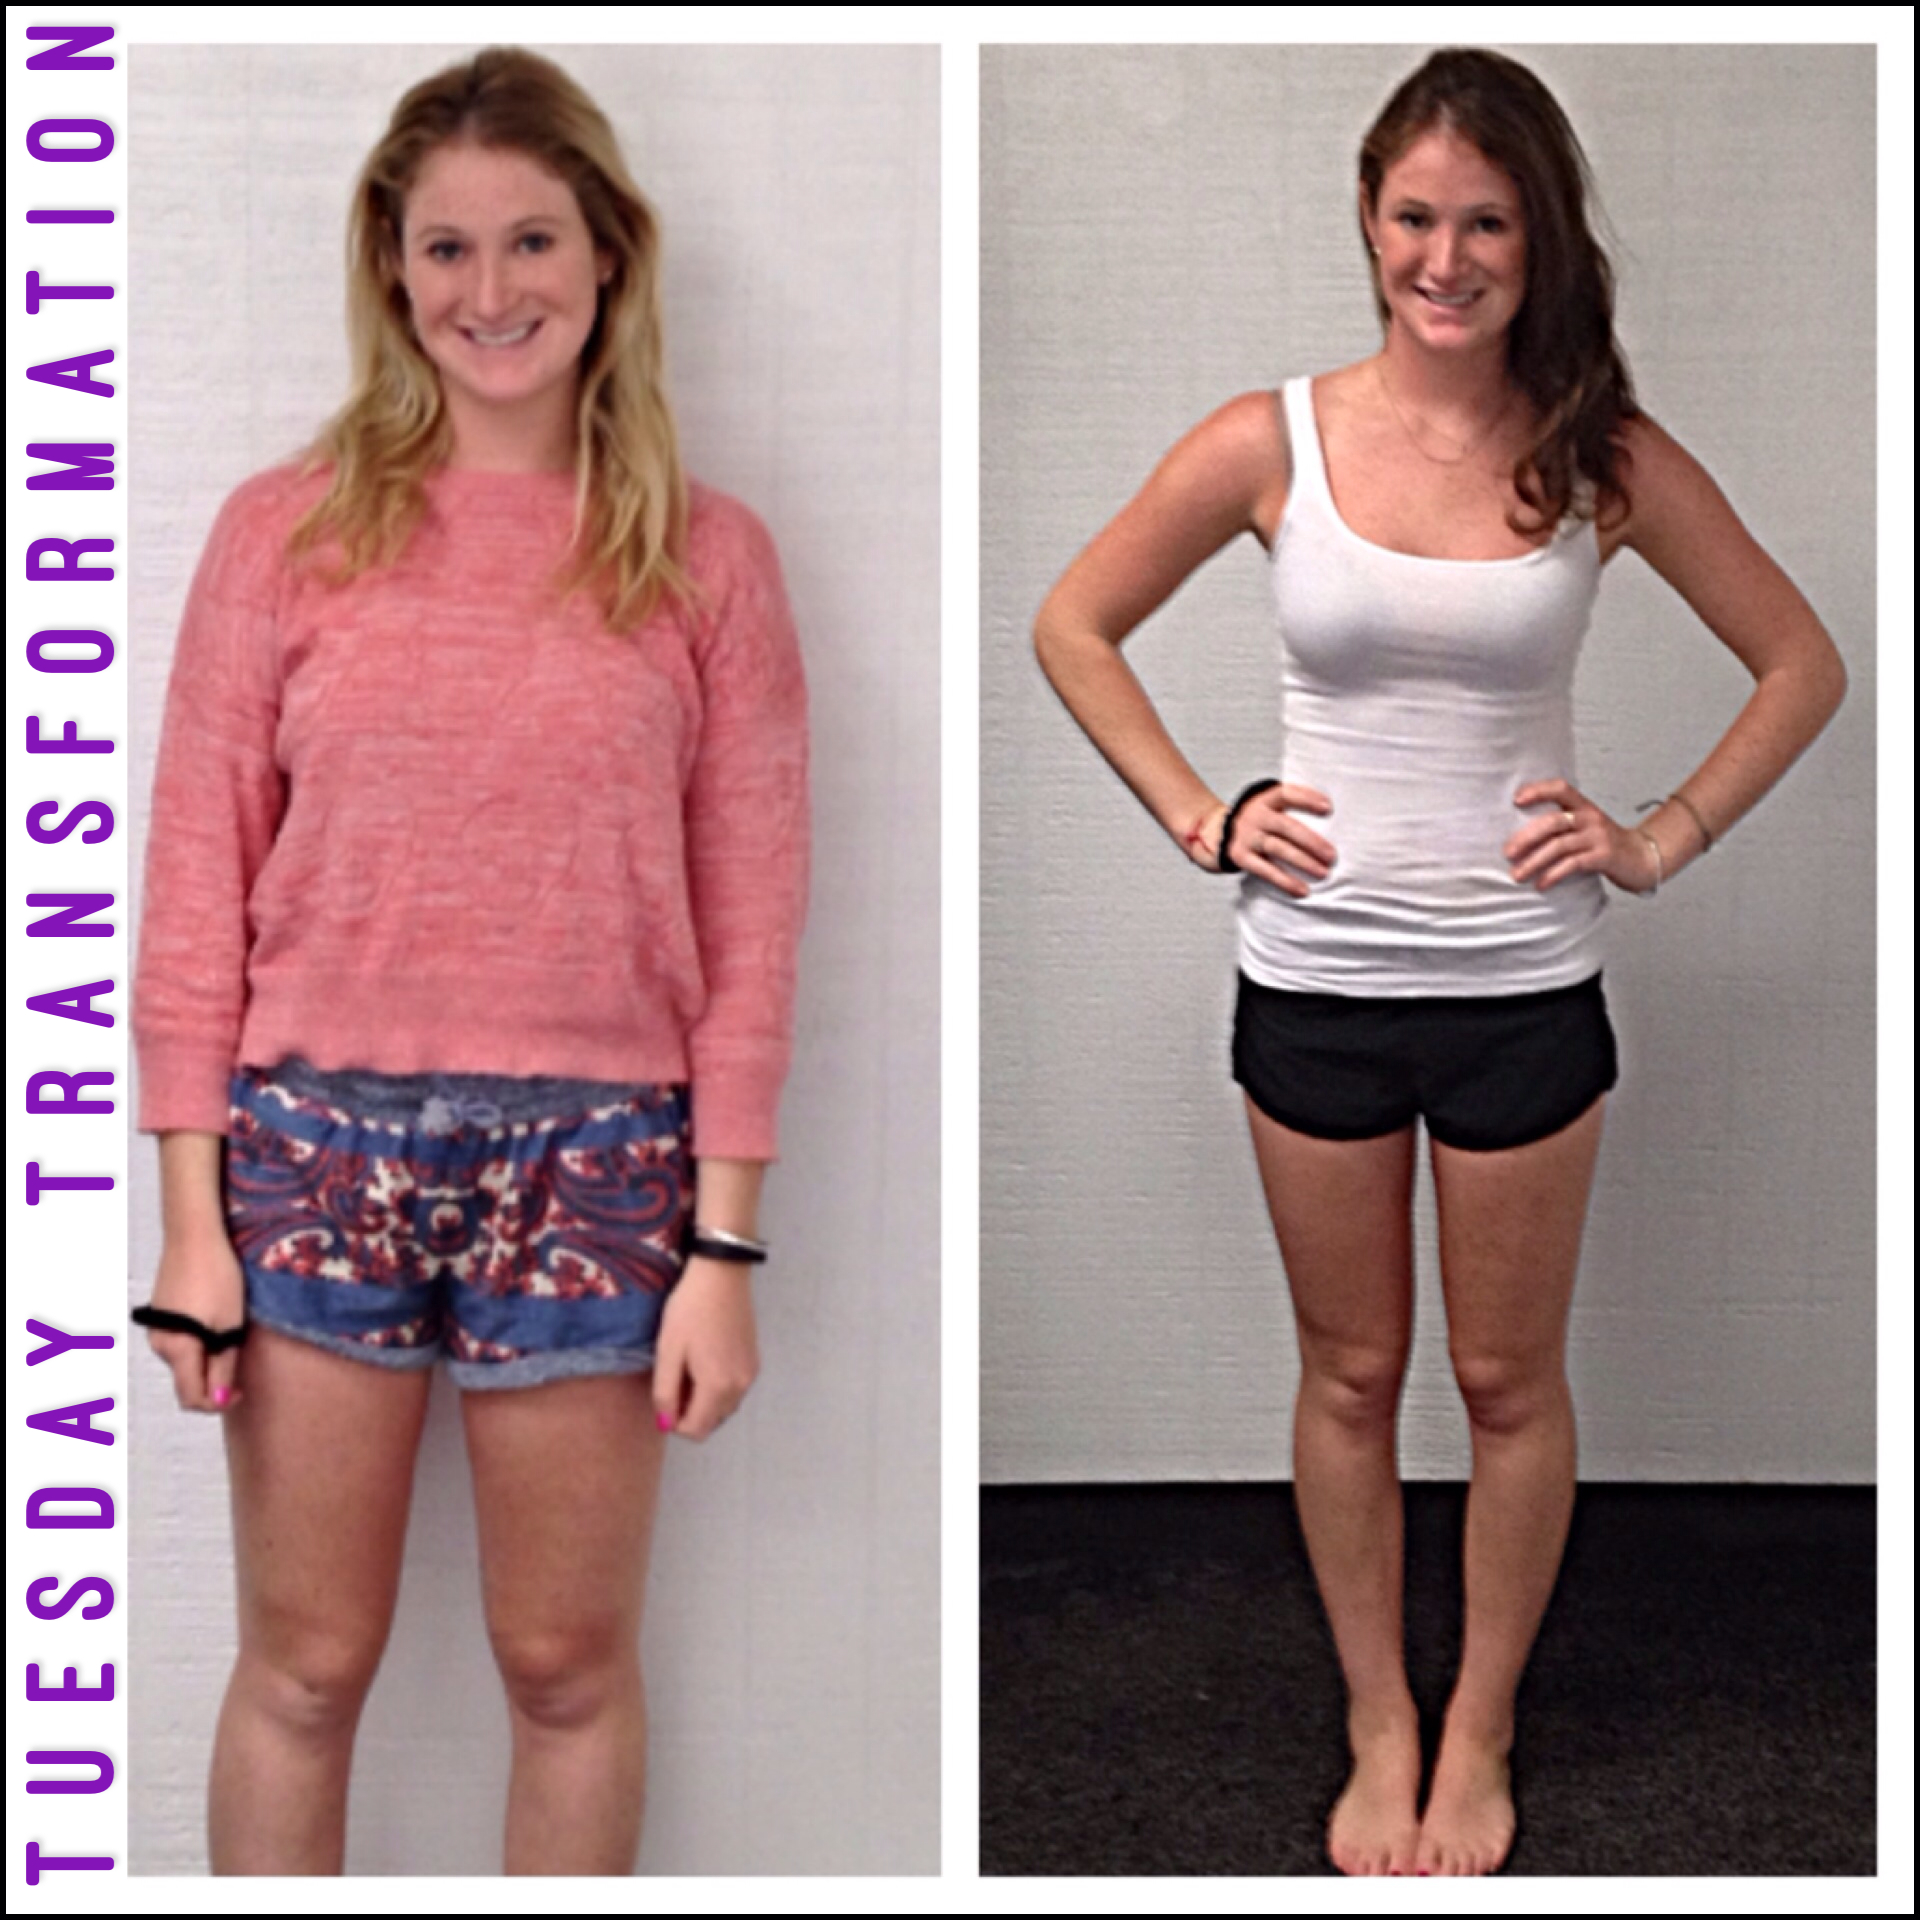 freshman 15 By gabrielle kratsas oh, the dreaded freshman 15 although many relate this phenomenon to female first-year college students, the freshman 15 weight gain can happen to anyone.